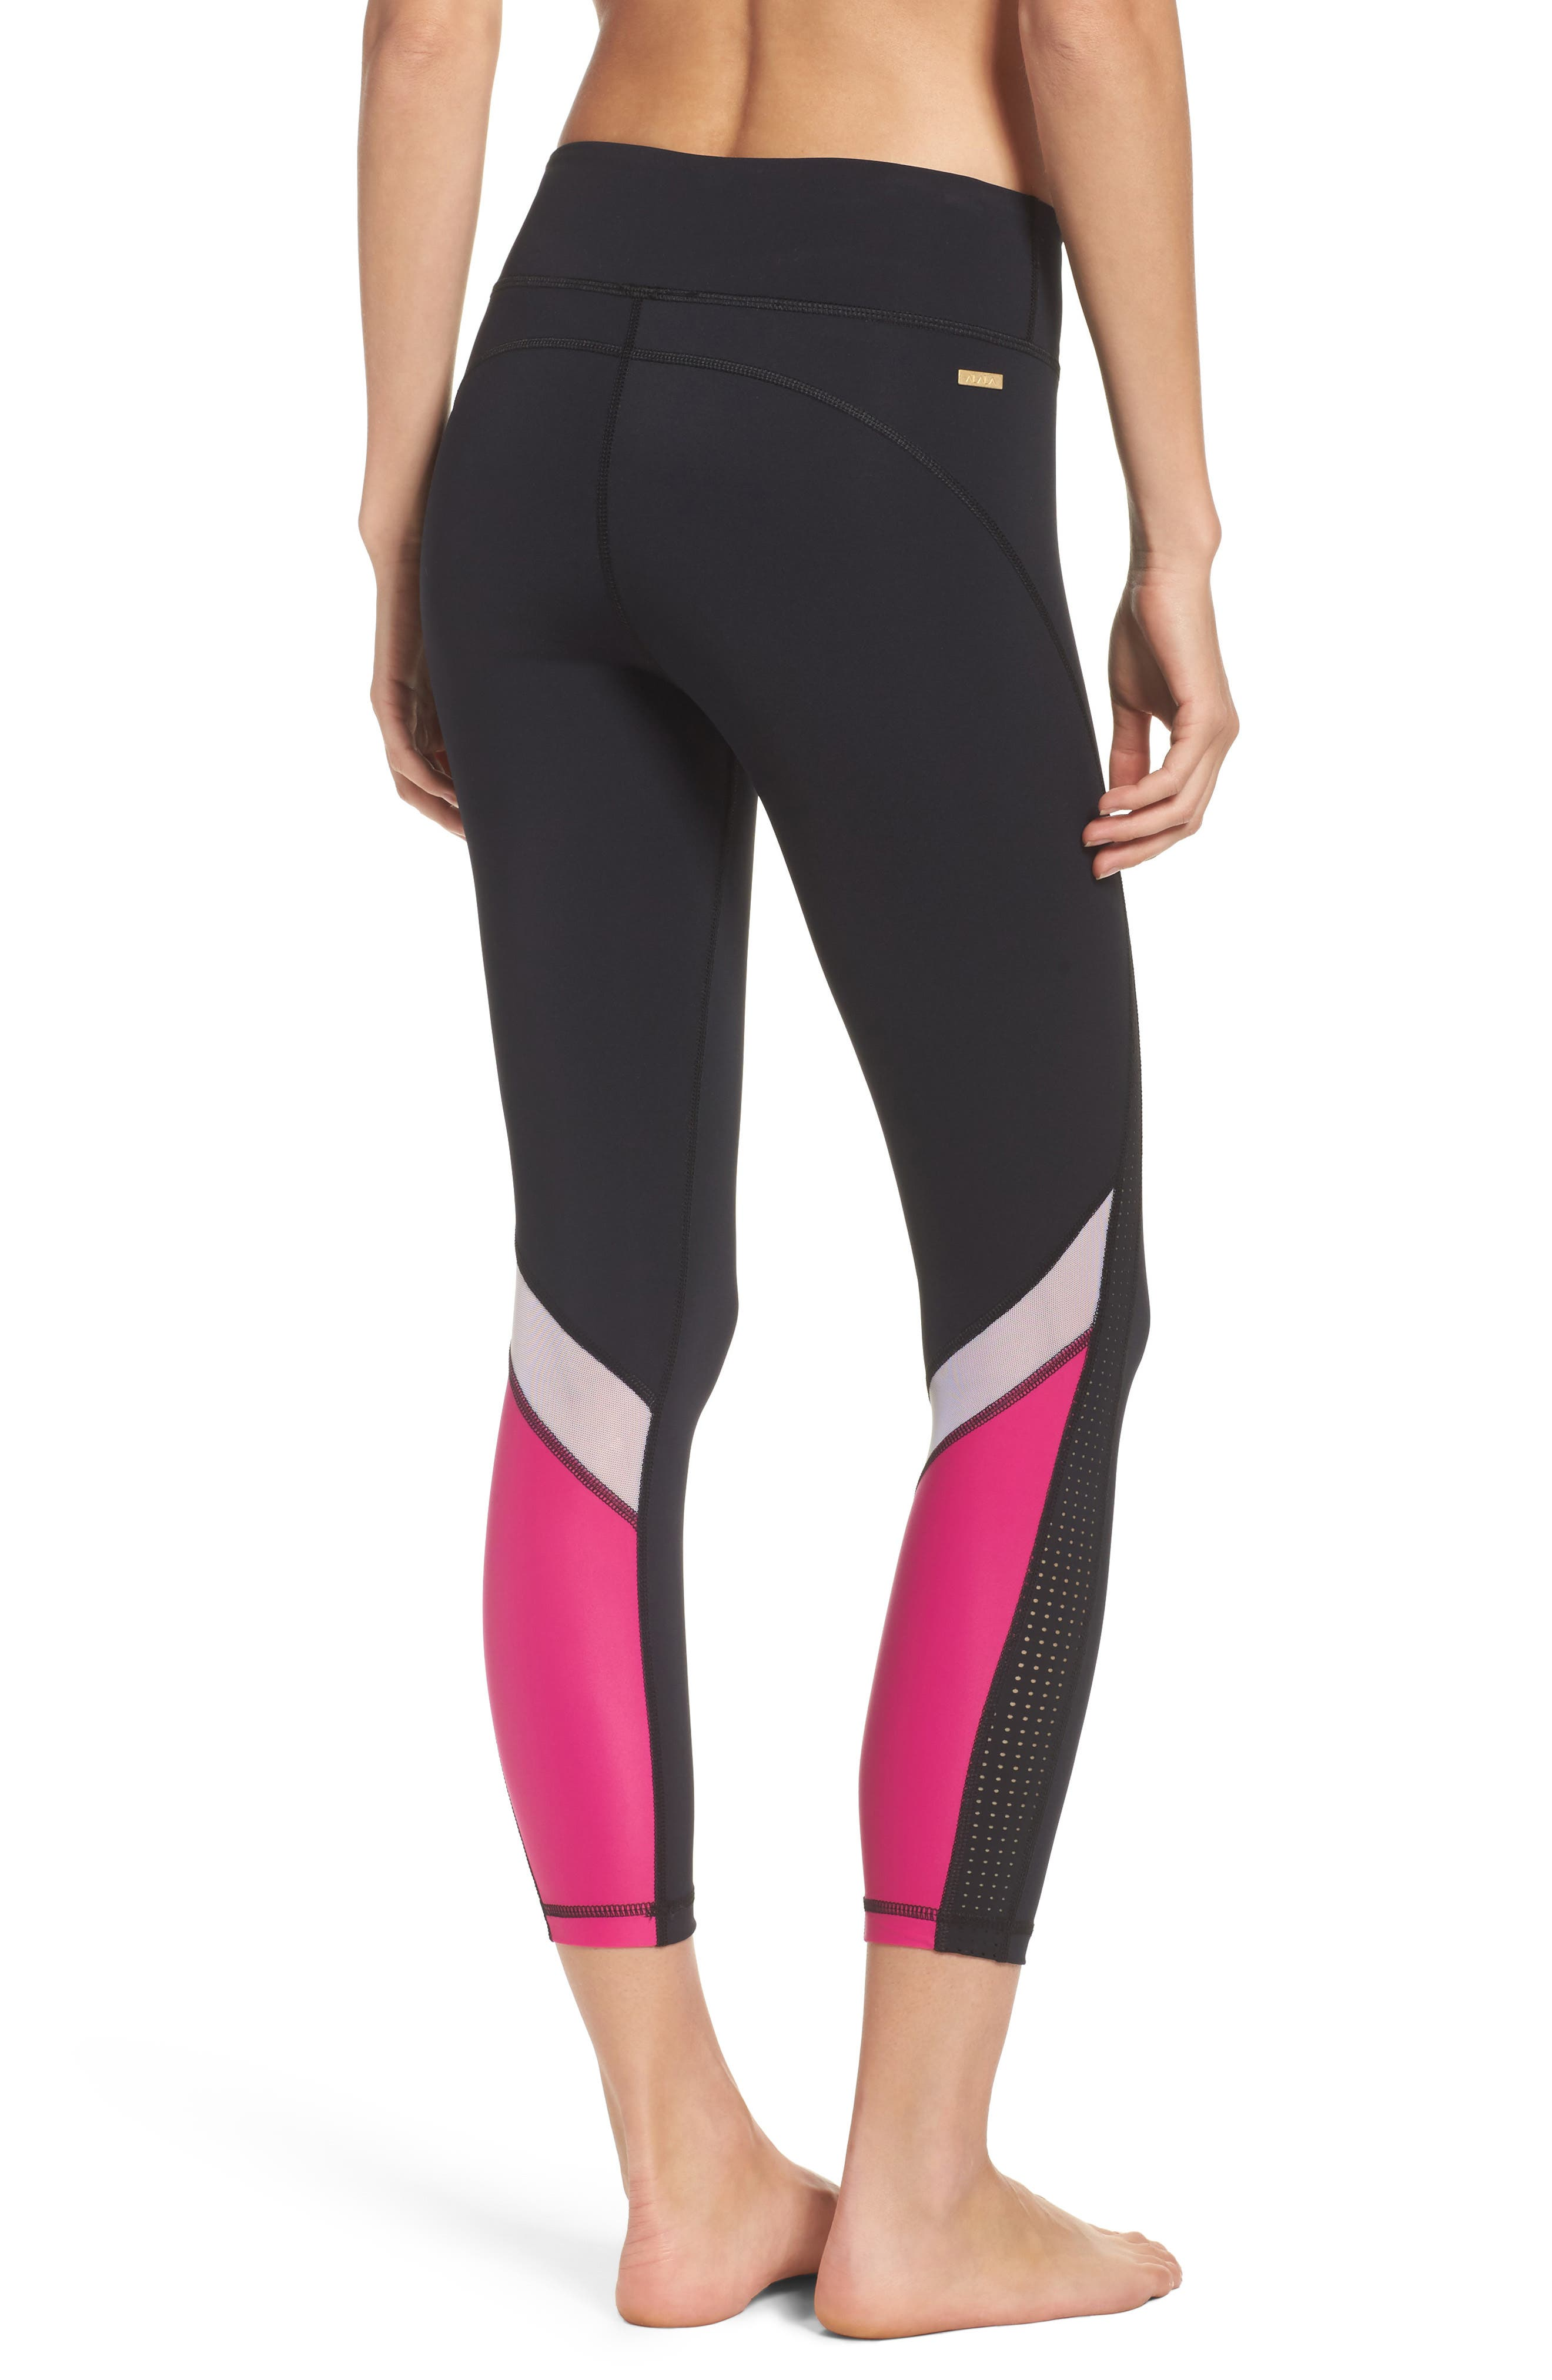 Heroine Performance Tights,                         Main,                         color, Black/ Hibiscus